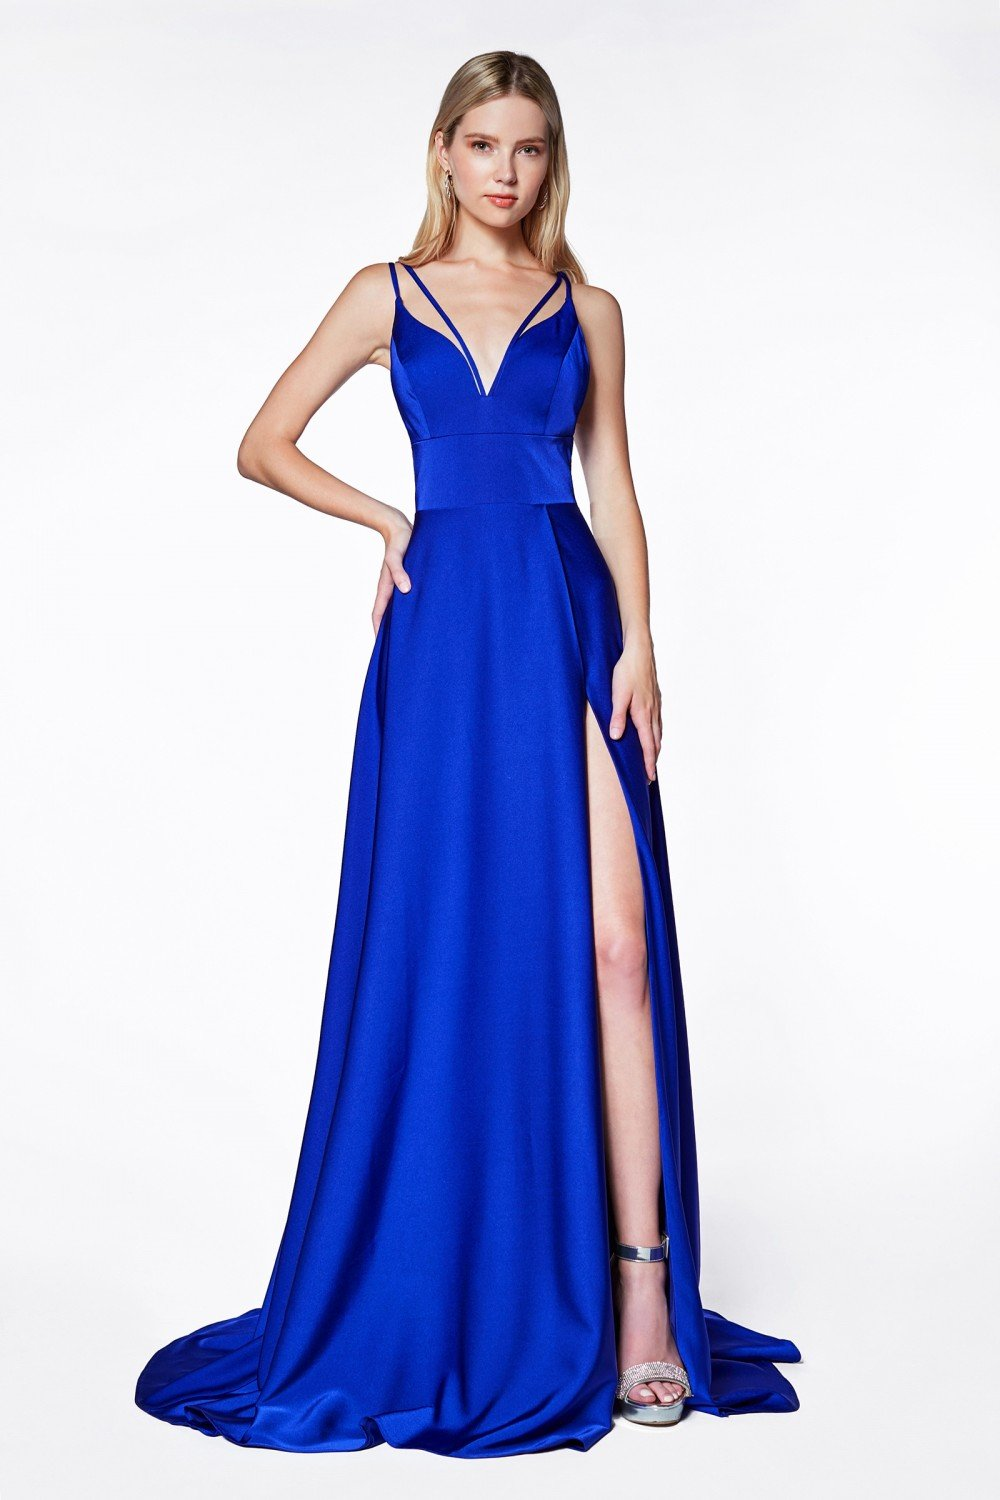 Royal Blue A-line v-neckline gown with slit and double strap.